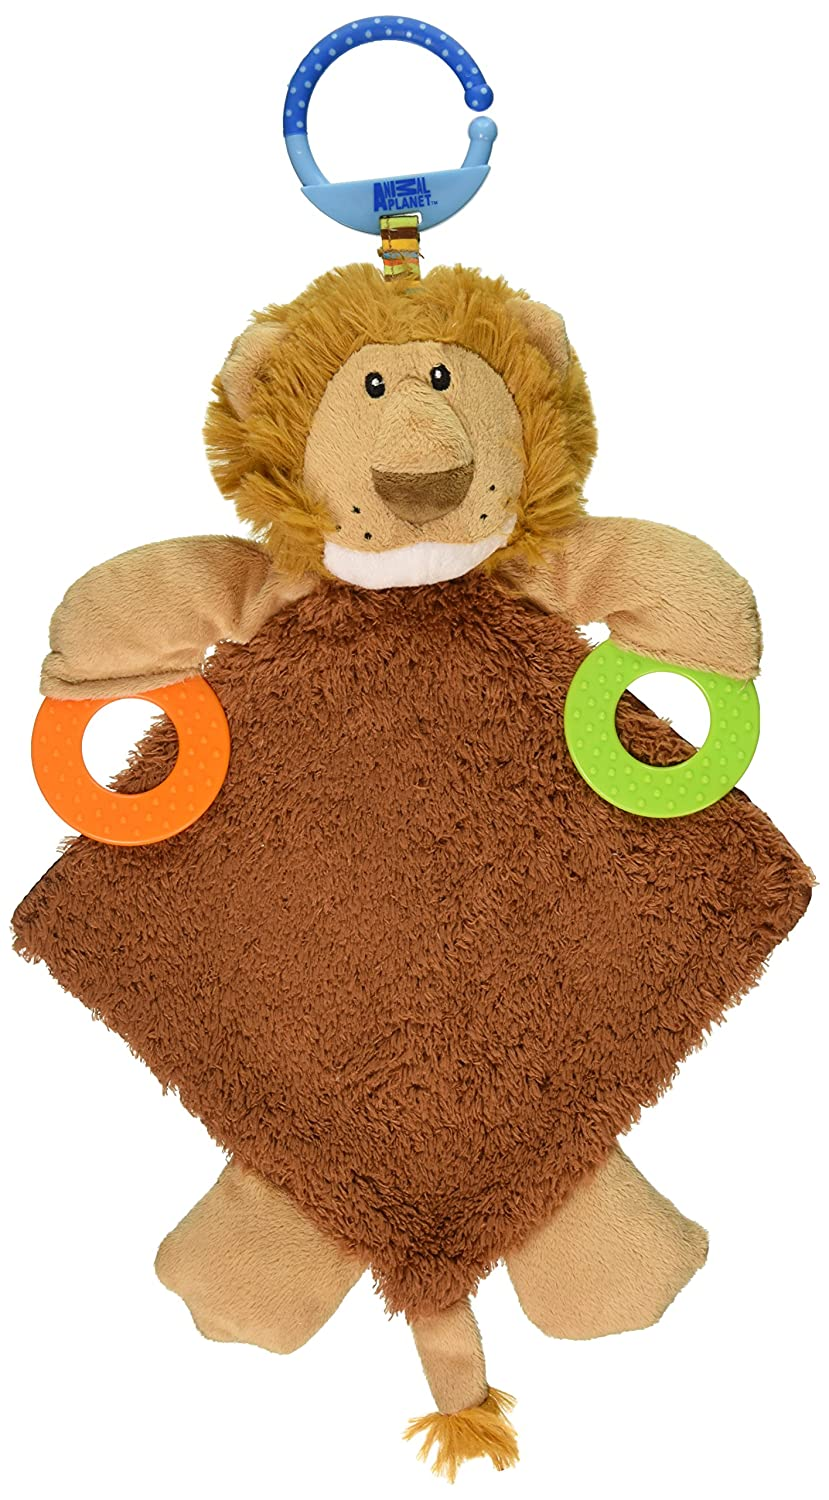 Buddies Animal Planet Zahnen - Zahnen Blanket Lion